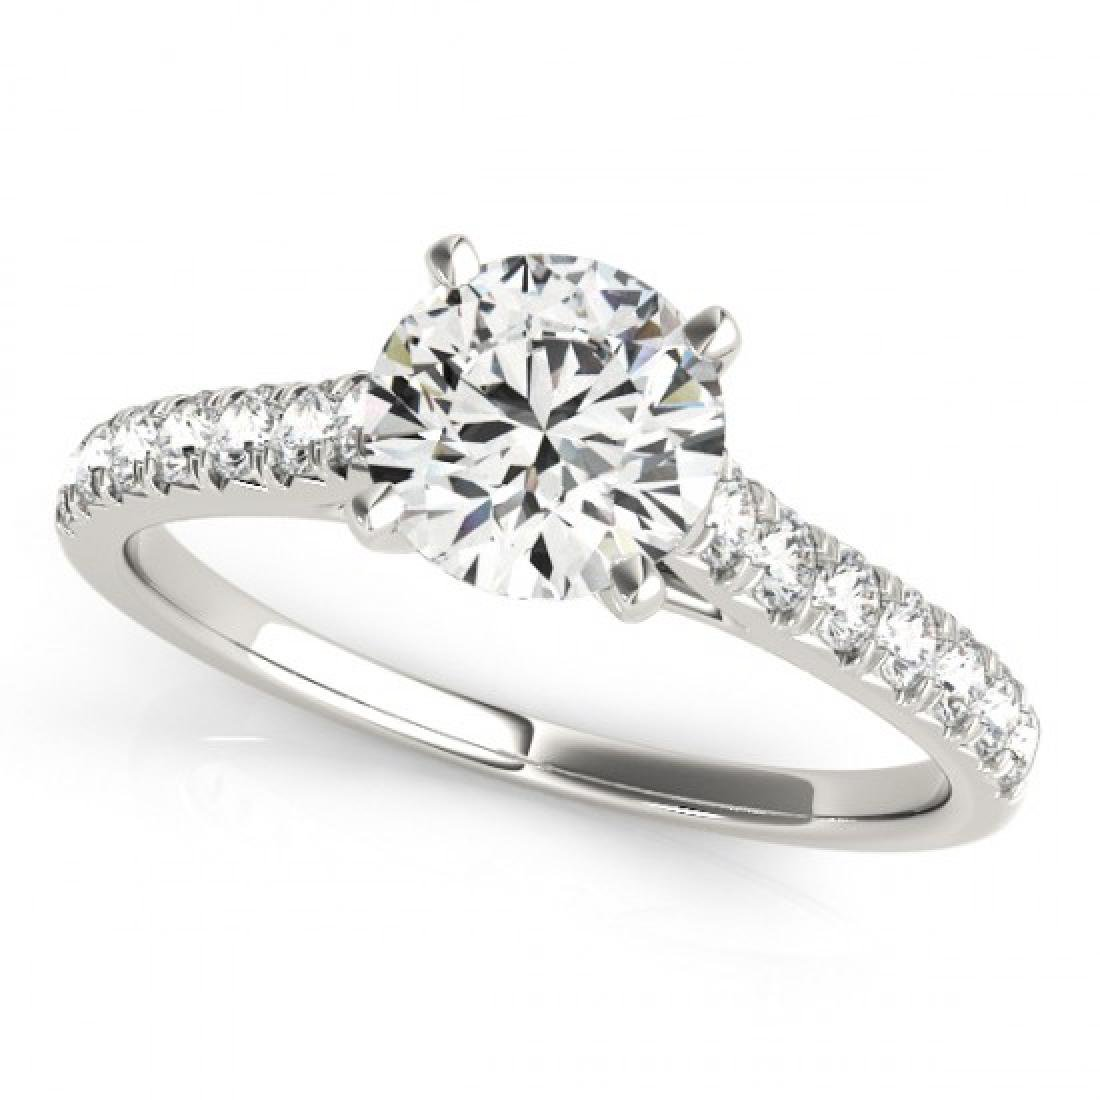 1.23 CTW Certified VS/SI Diamond Solitaire Ring 18K